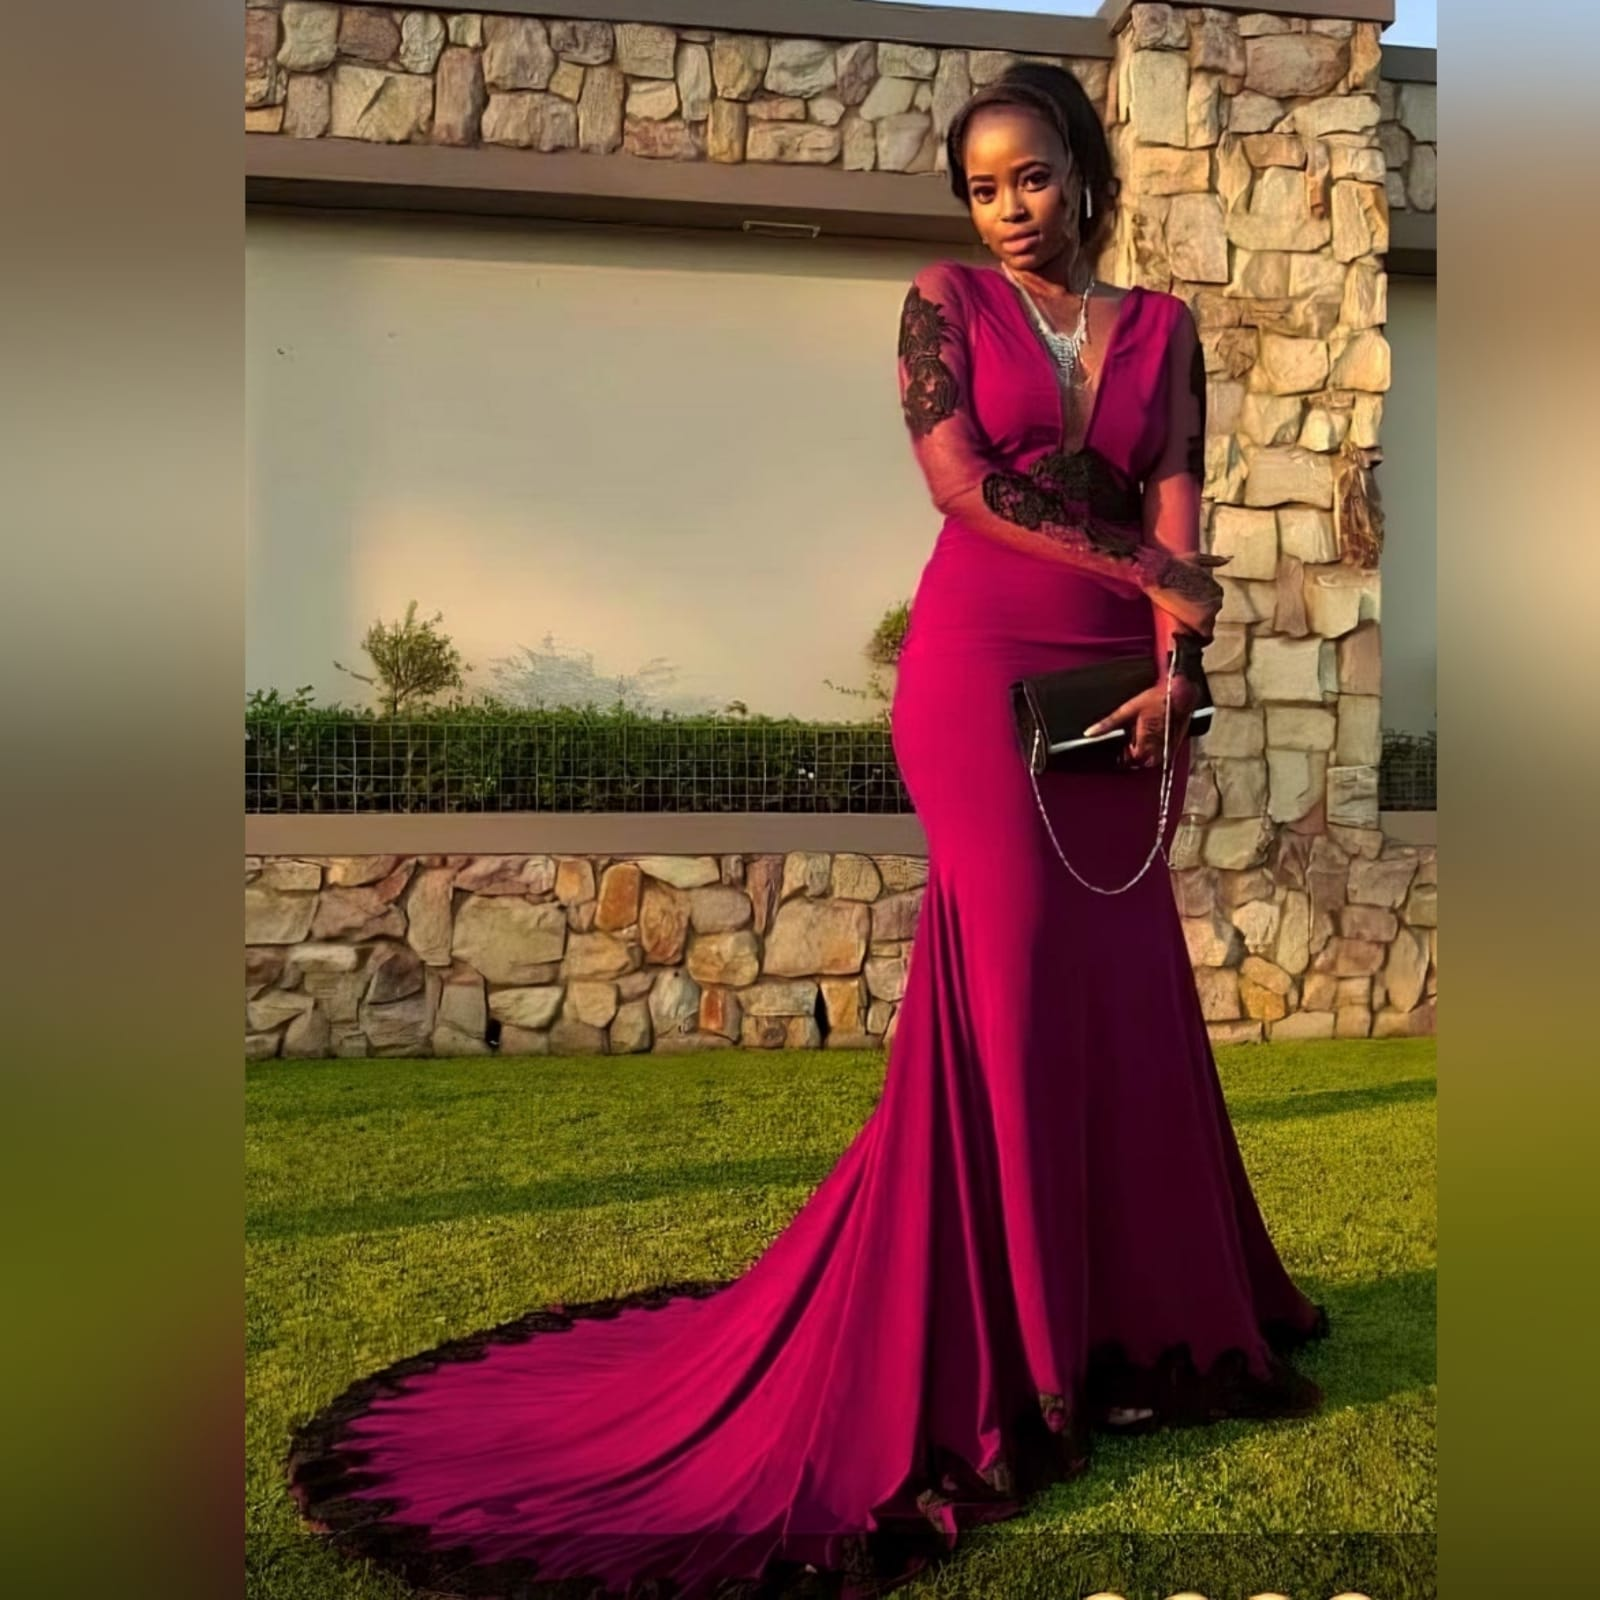 Soft mermaid burgundy matric farewell dress detailed with black lace 6 palesa looked gorgeous with my creation. A soft mermaid burgundy matric farewell dress detailed with black lace. With a sheer open back and long sheer sleeves detailed with black lace.